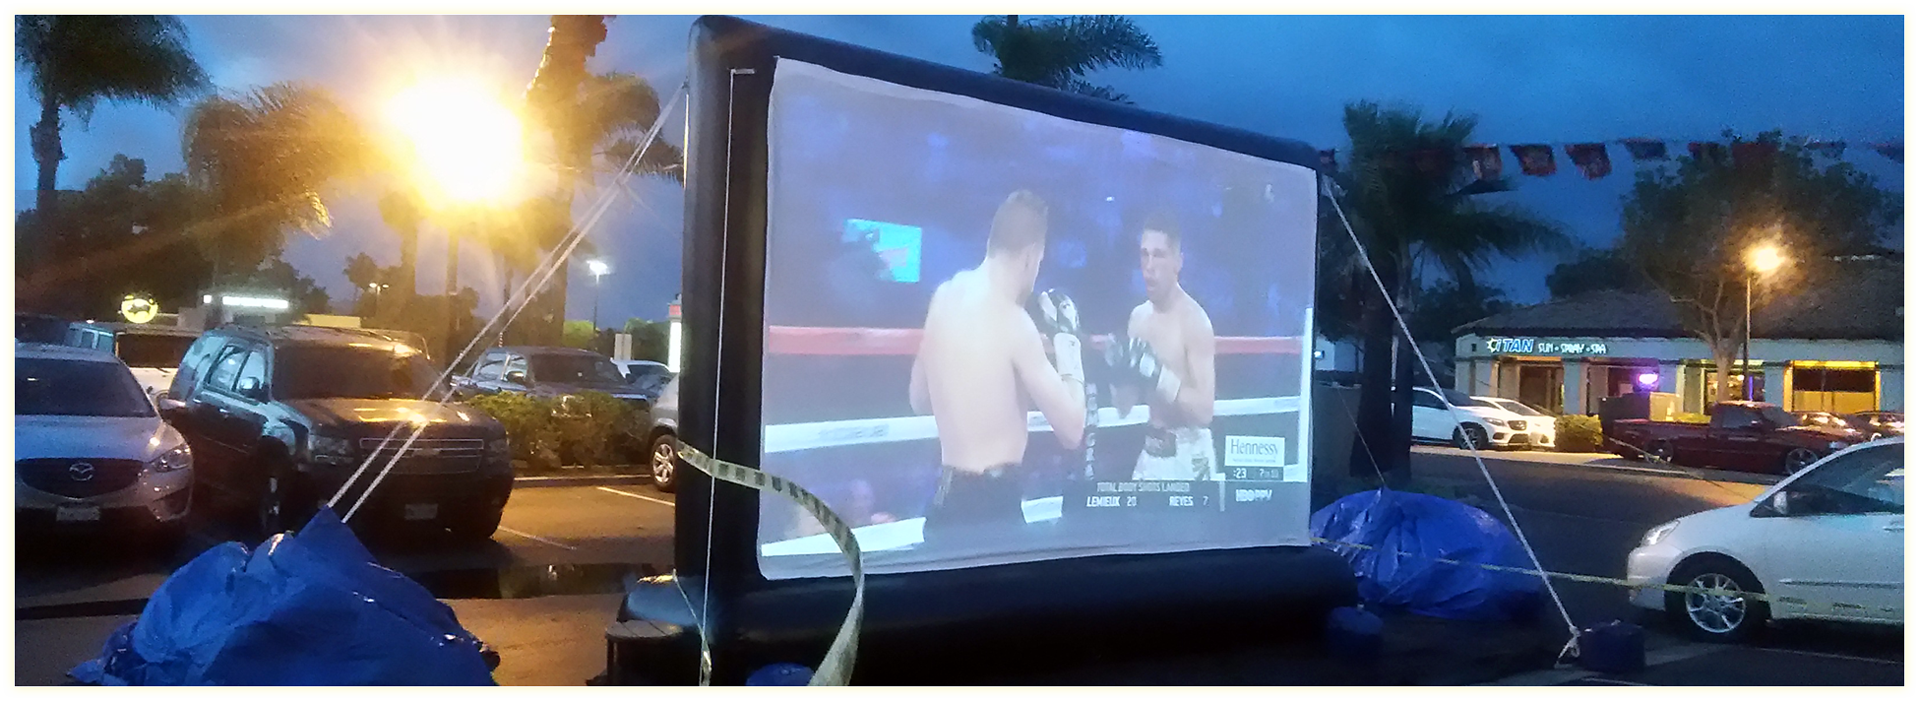 outdoor movie screen weather policy